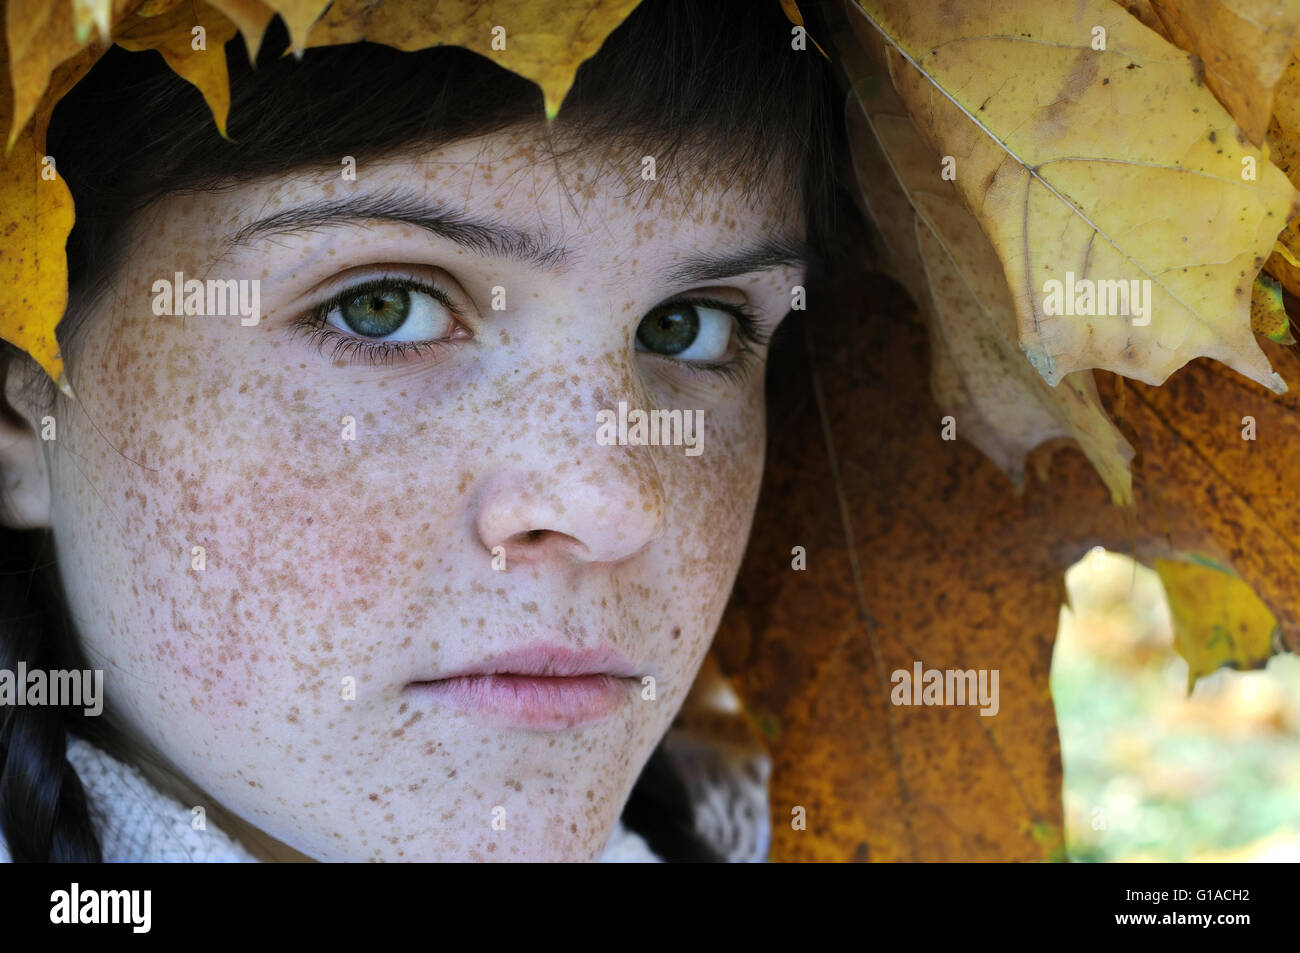 close-up portrait of freckled teenage girl - Stock Image